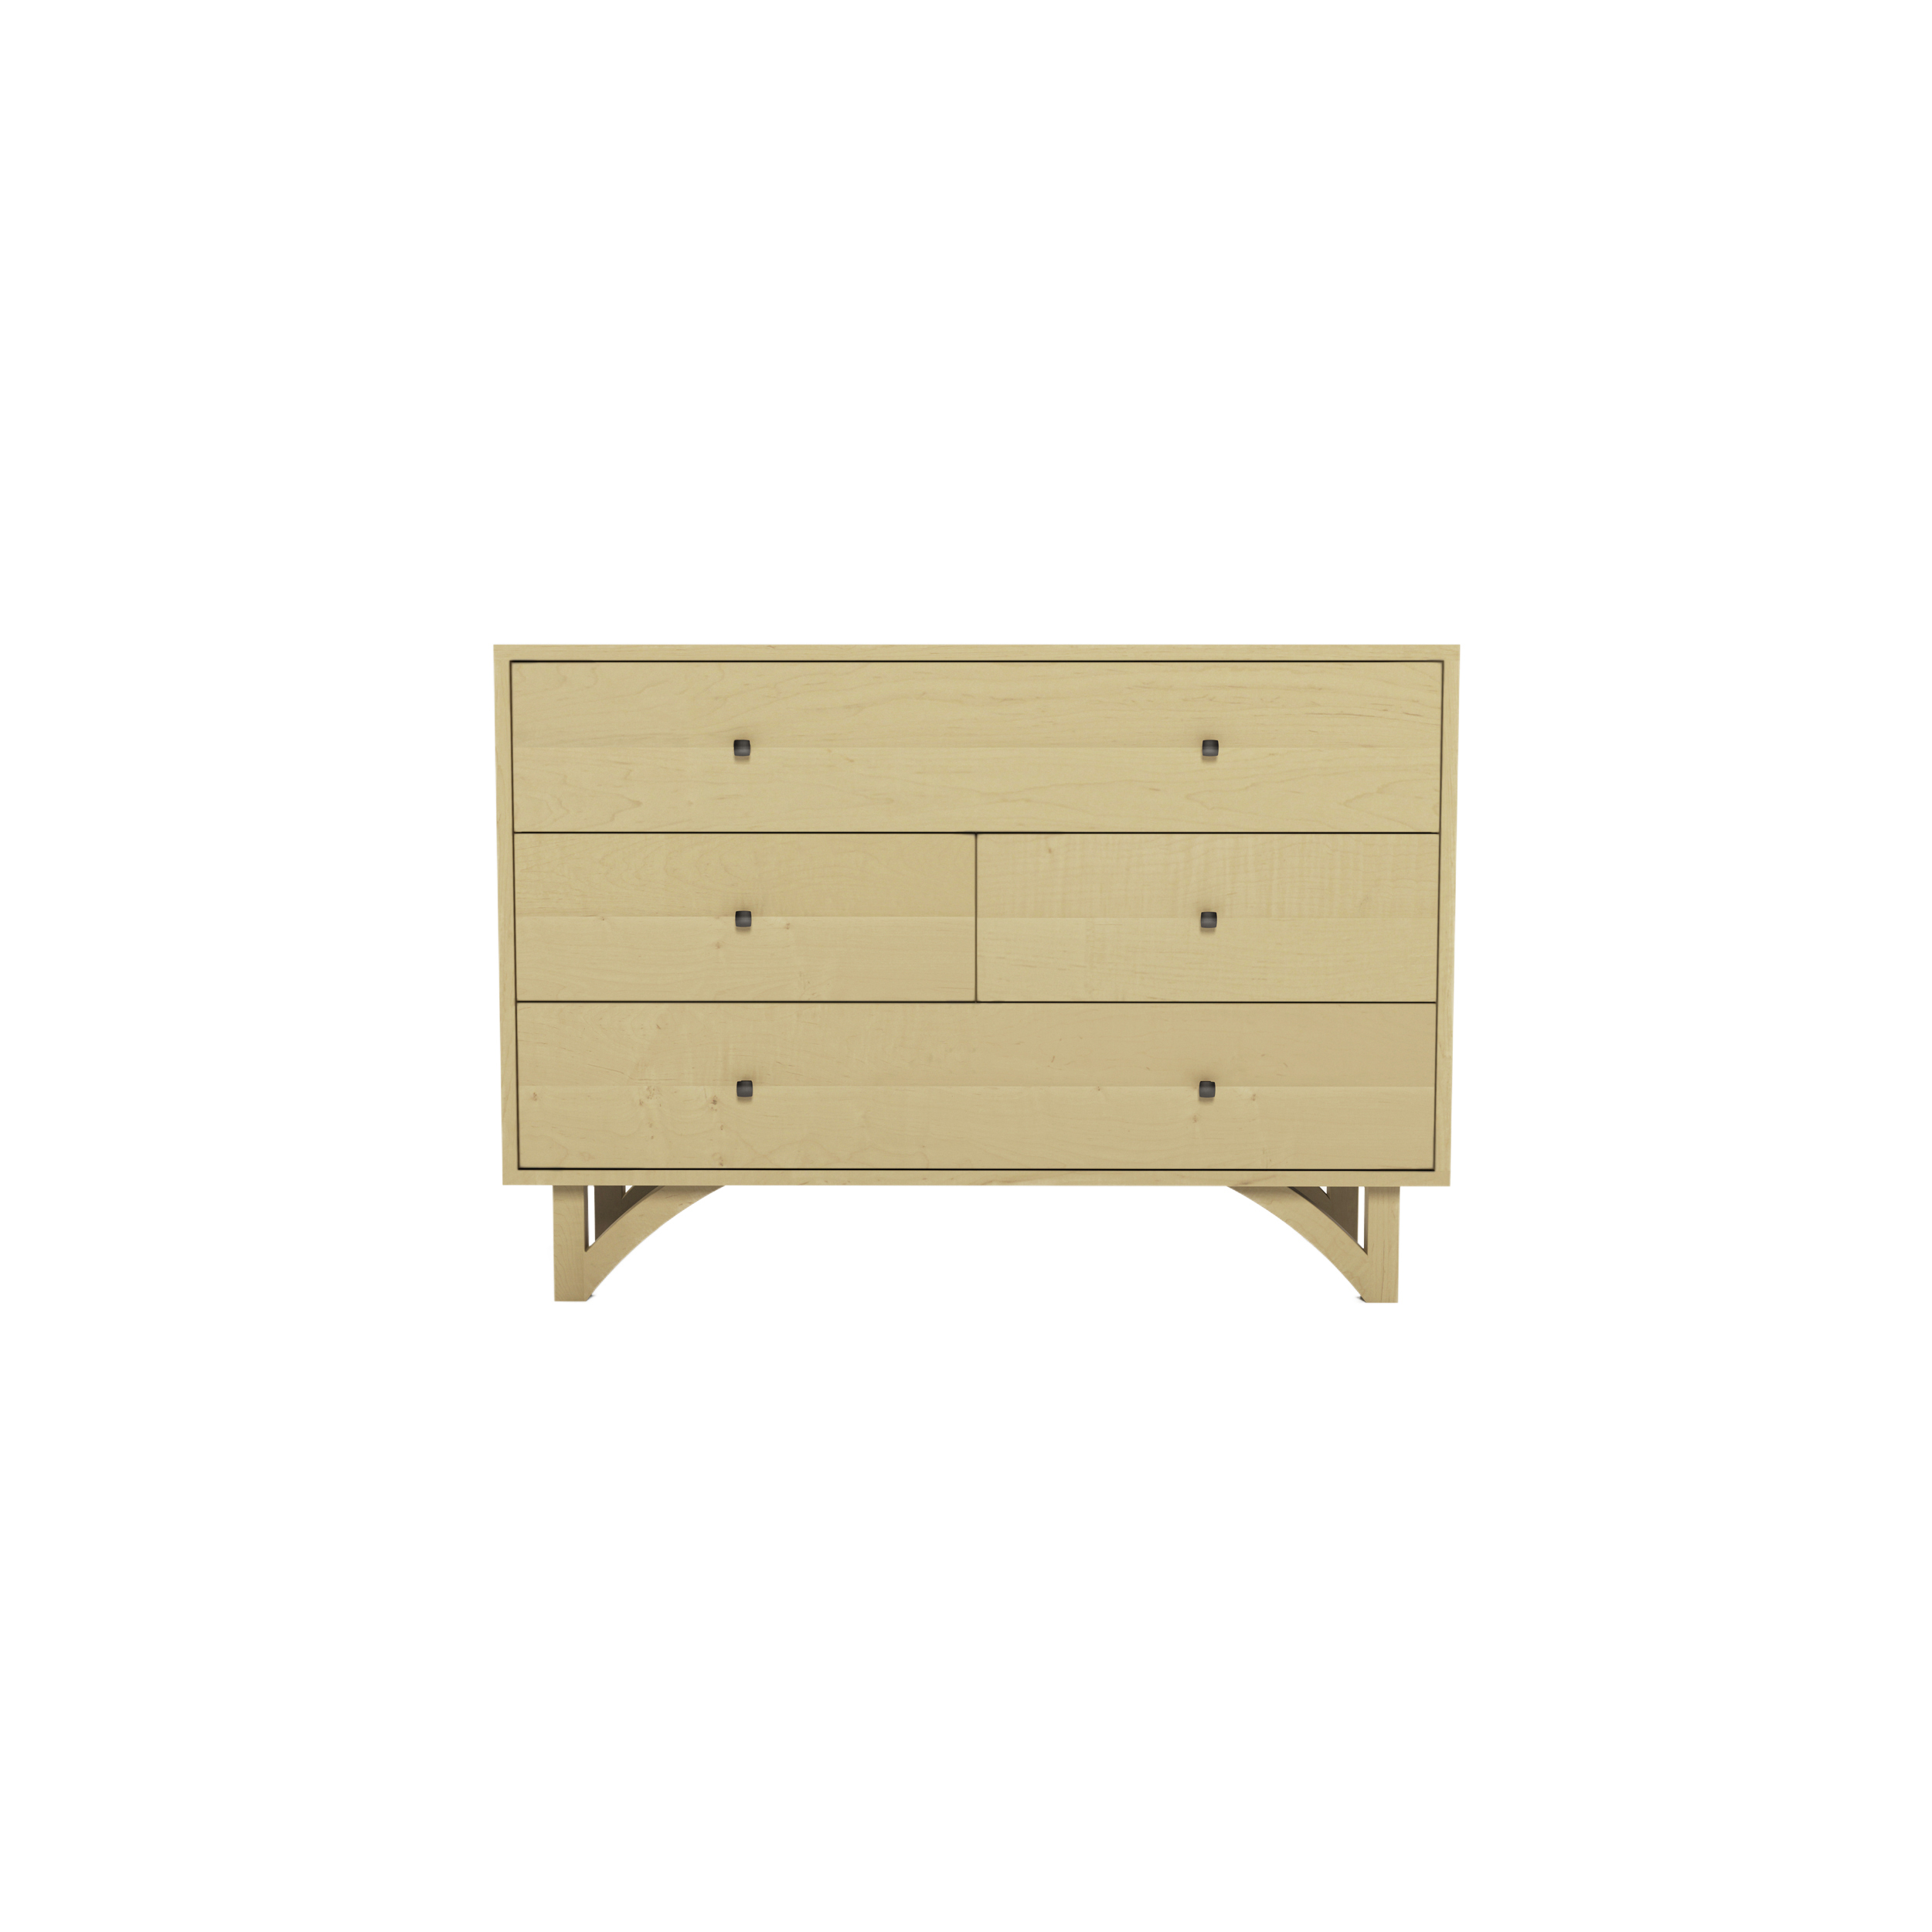 Series 454 Dresser With Four Drawers At 44″ In Width